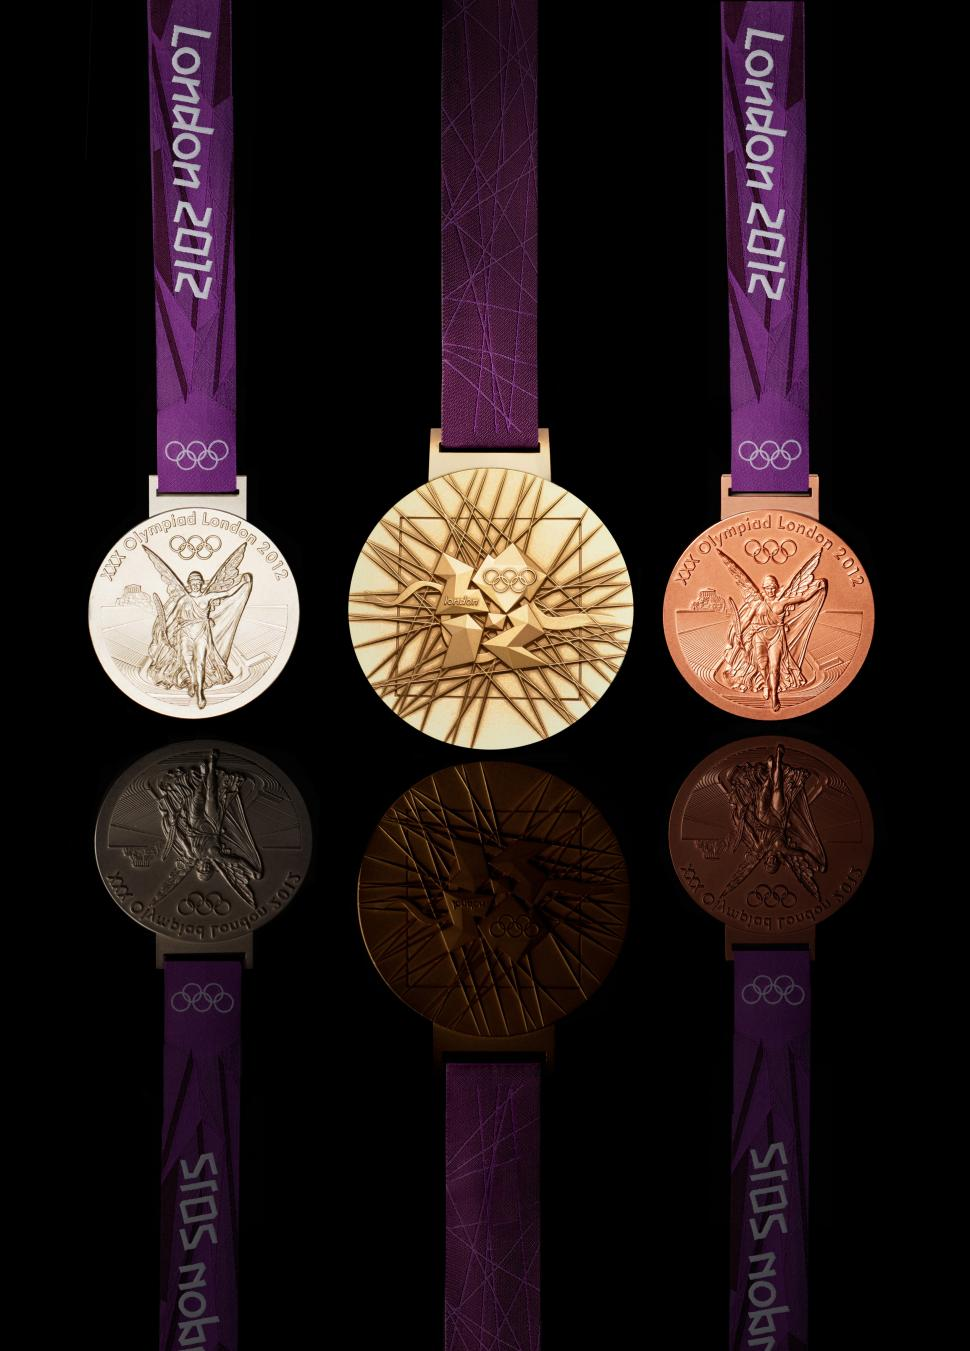 London 2012 medals